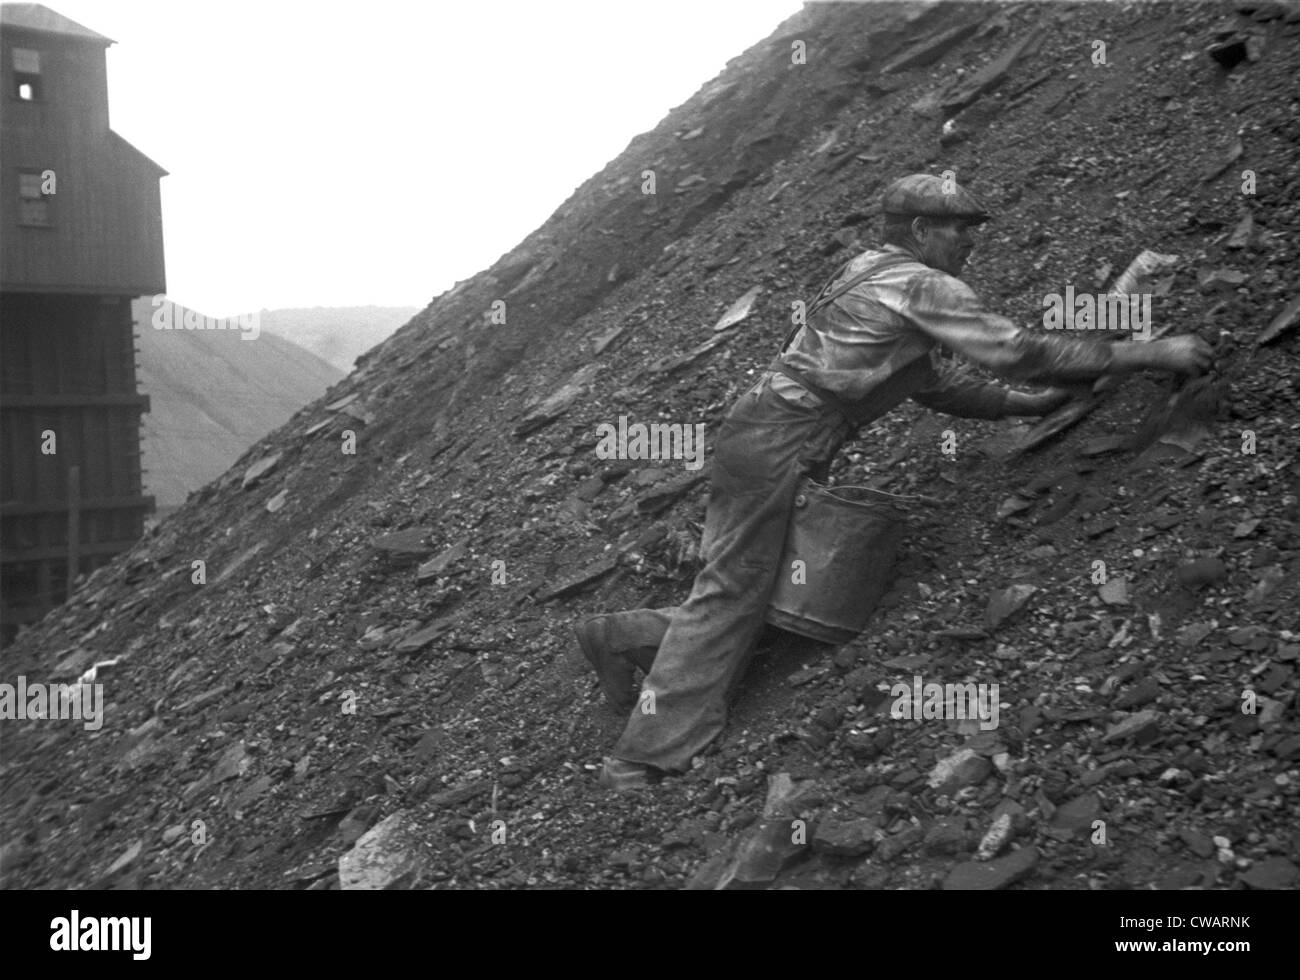 During the Great Depression a man salvages good coal from slag heaps at Nanty Glo, Pennsylvania, for which he is - Stock Image